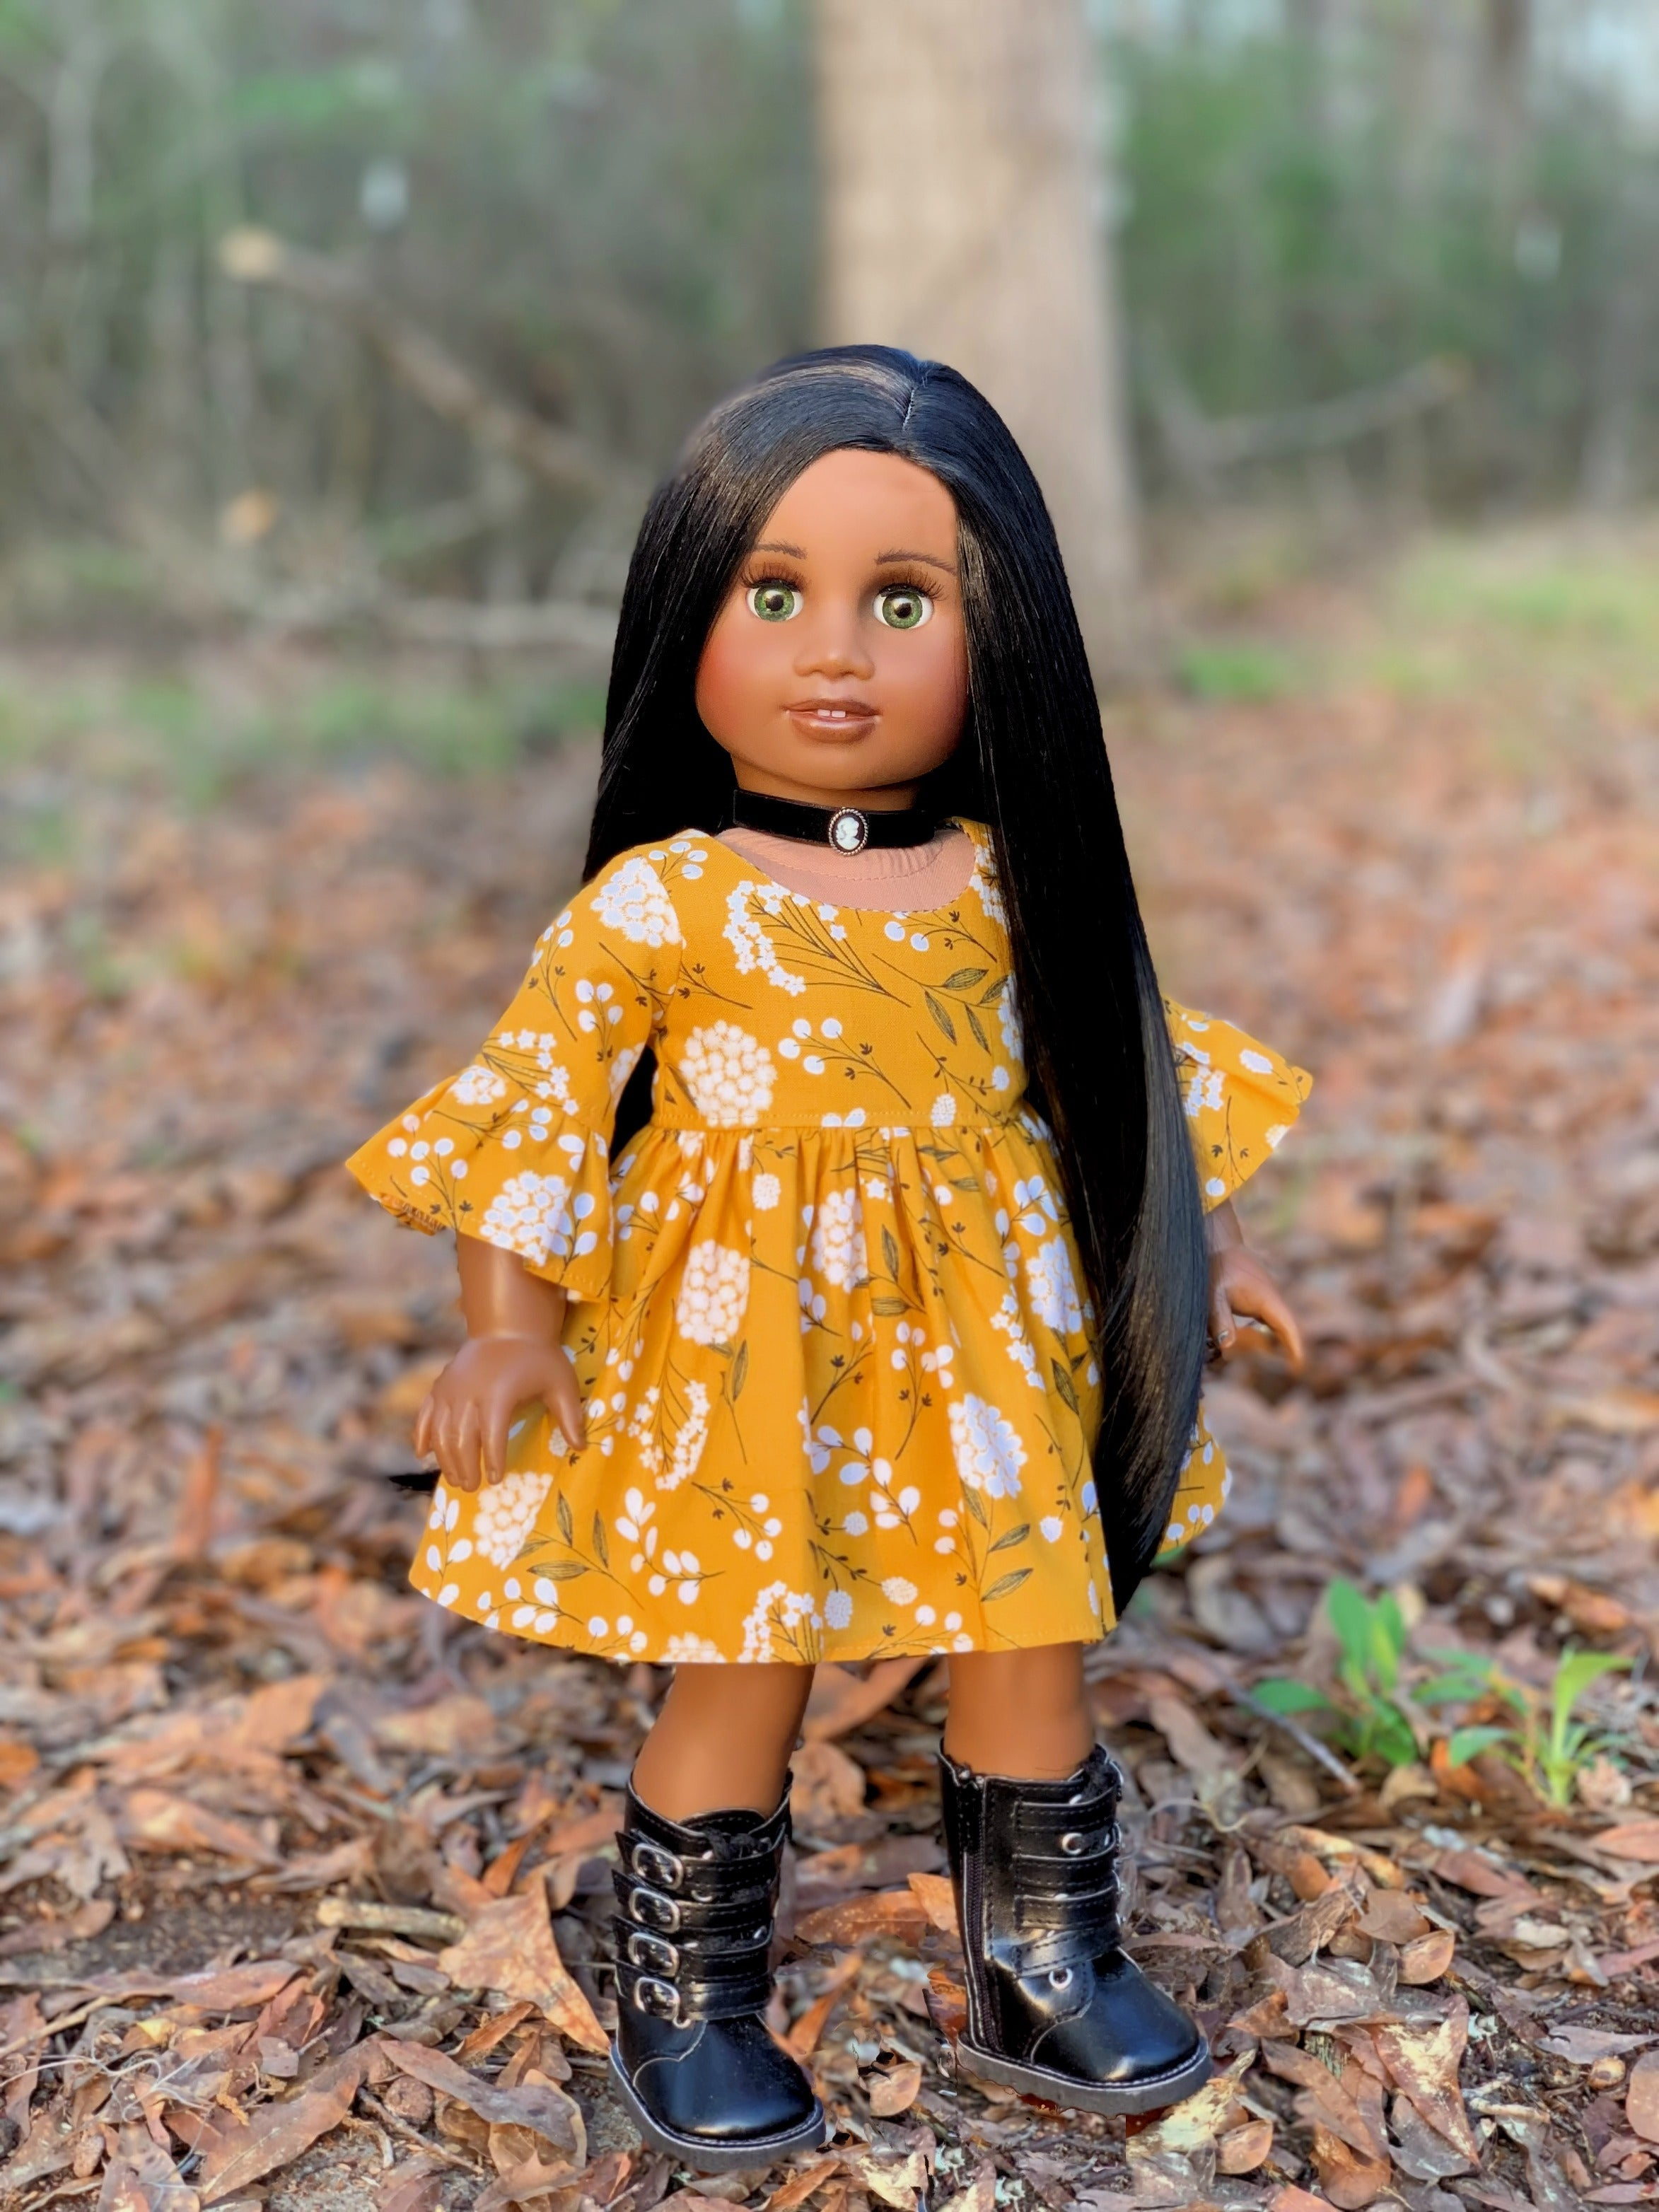 Zazou Dolls Exclusive Sweetie Ebony WIG  for 18 Inch dolls such as Journey, OG and American Girl